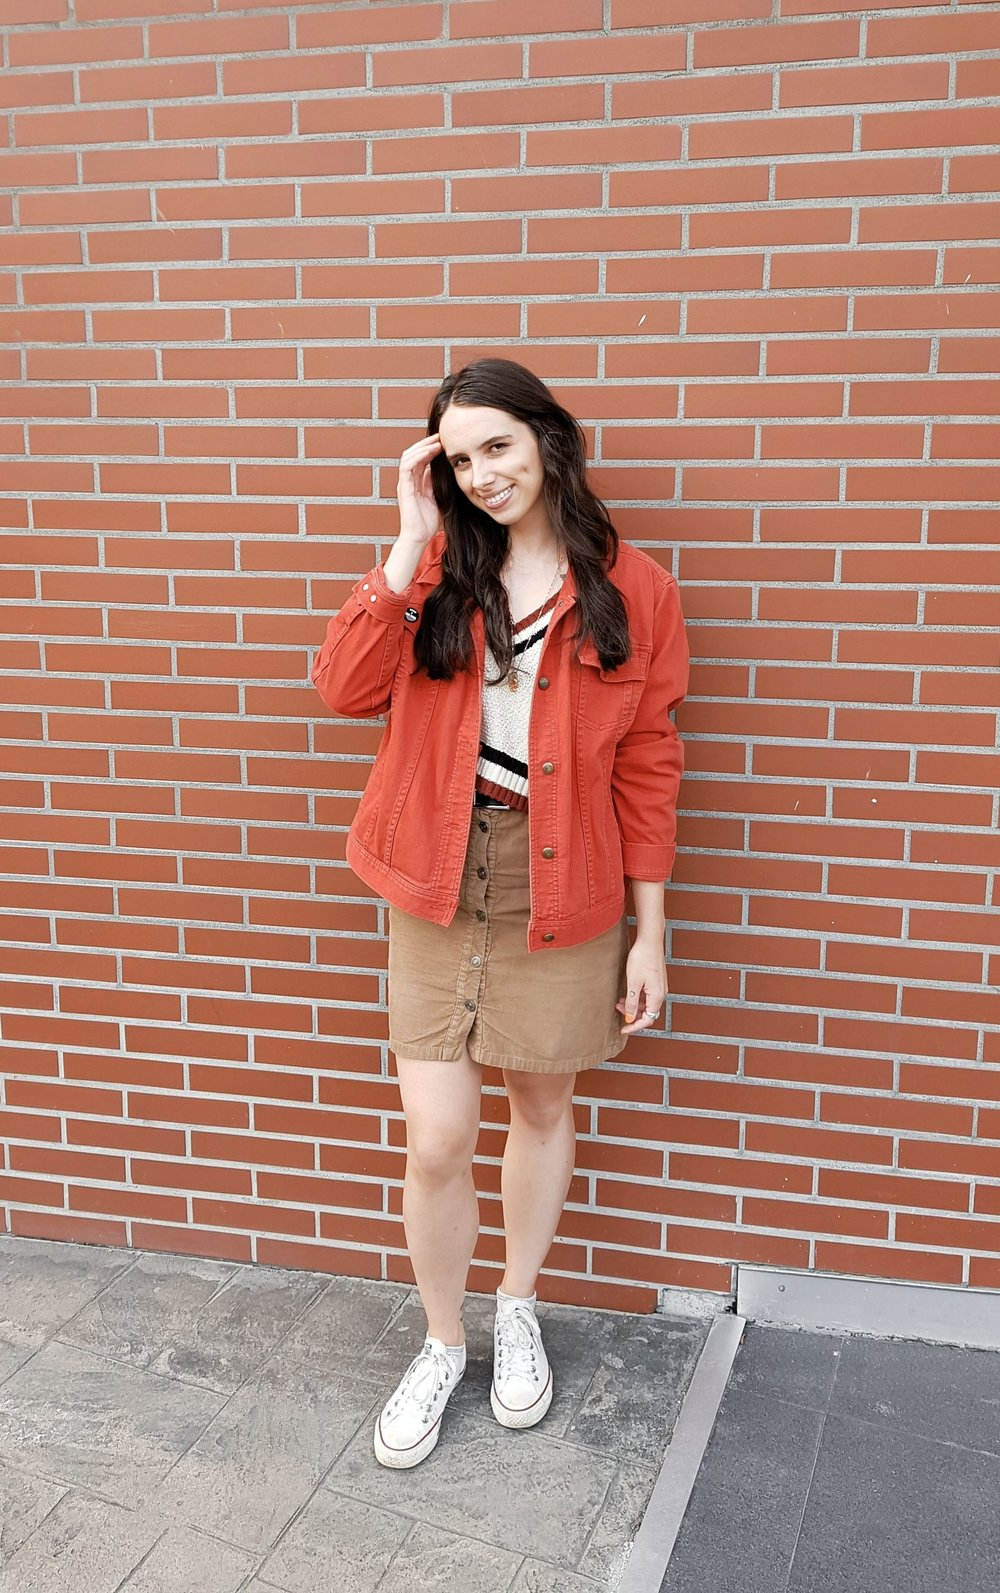 TUESDAY - Urban Outfitters sweater, Zara skirt, vintage Ralph Lauren jacket, Converse shoes